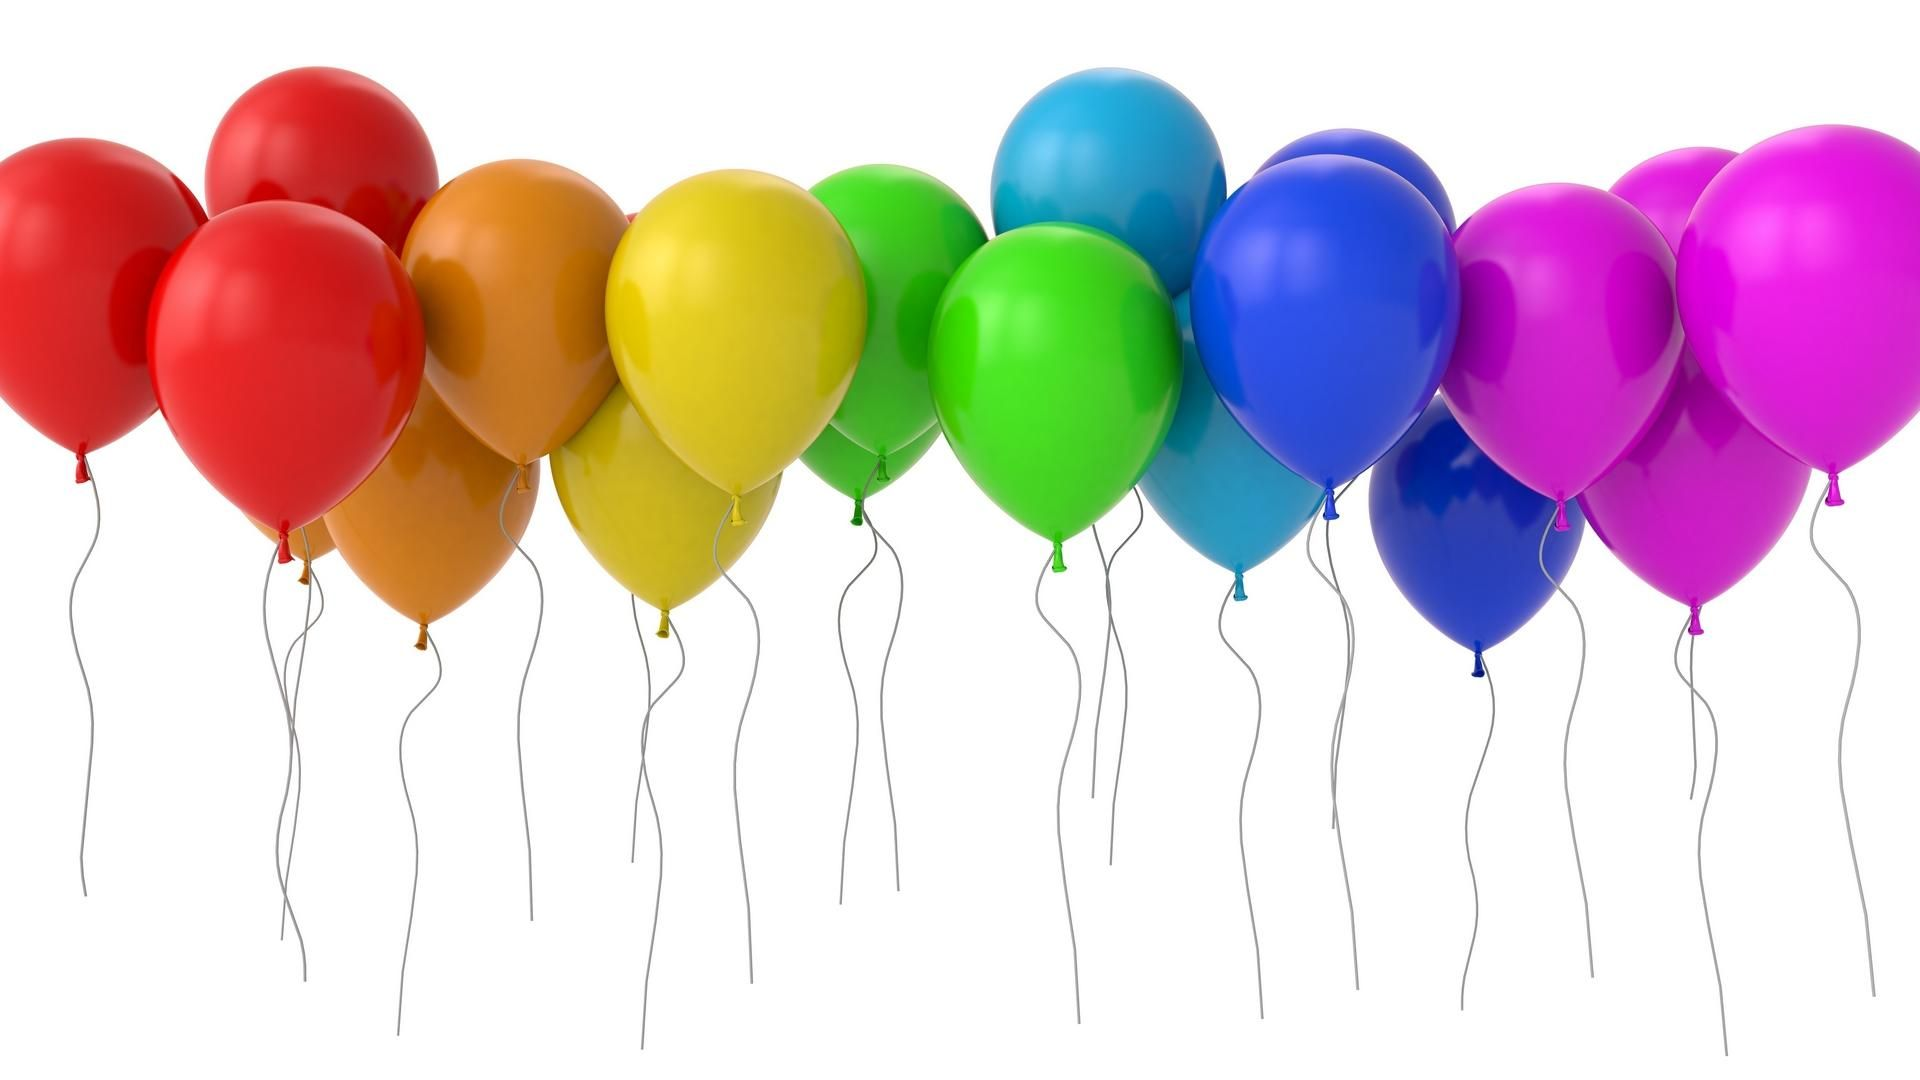 Colorful Balloons Wallpapers 8